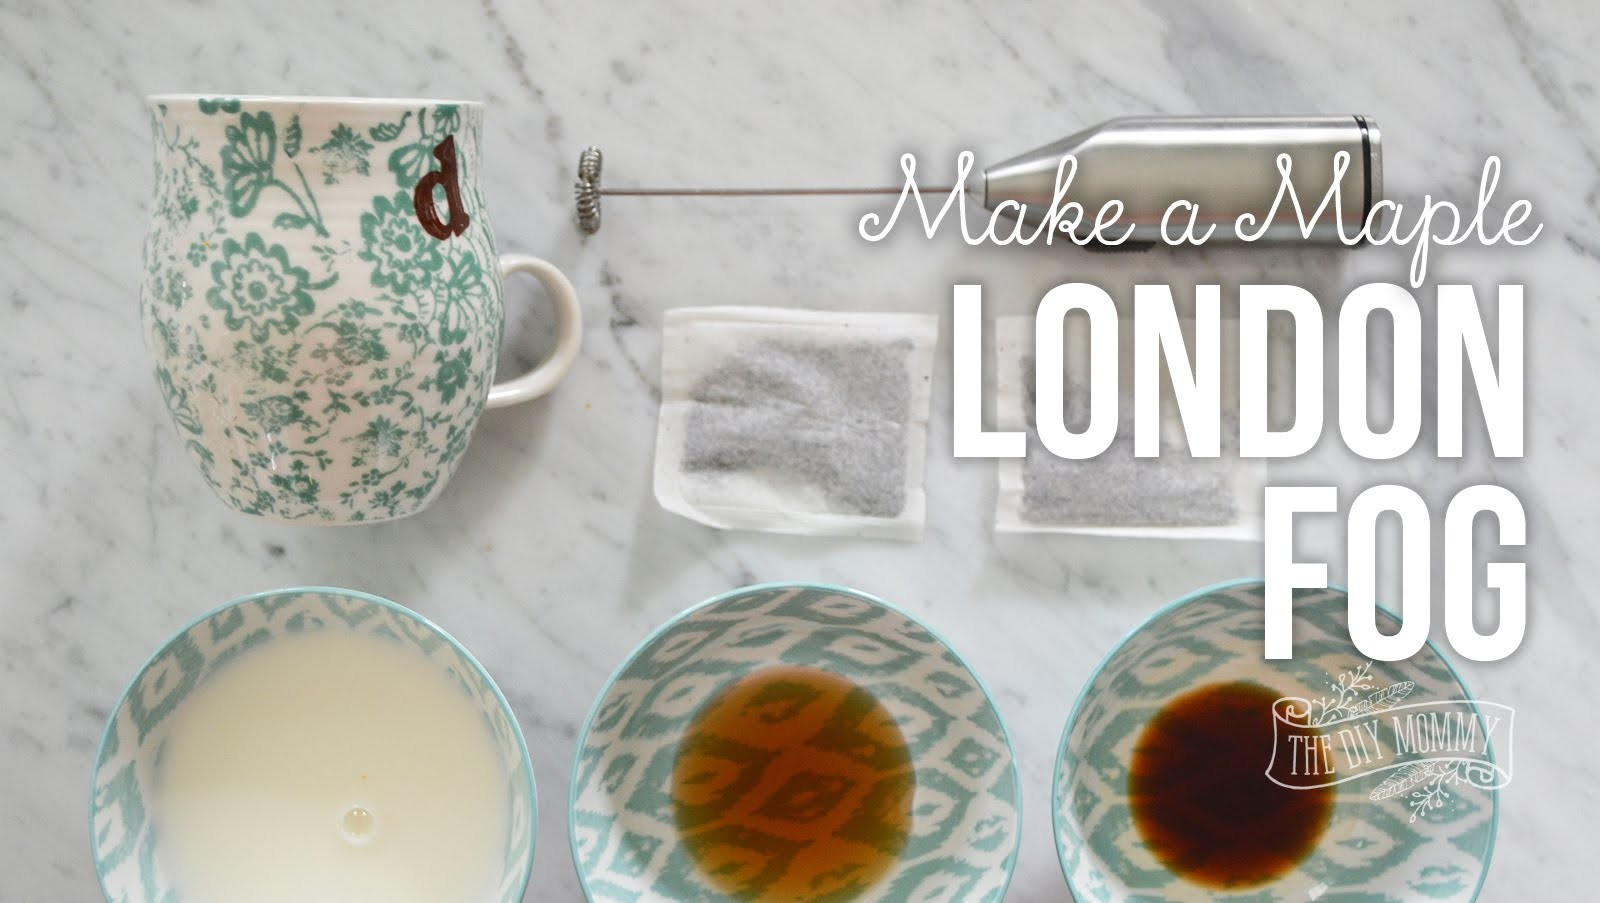 How to Make a Maple London Fog (Earl Grey Tea Latte). + The secret to frothy milk at home!